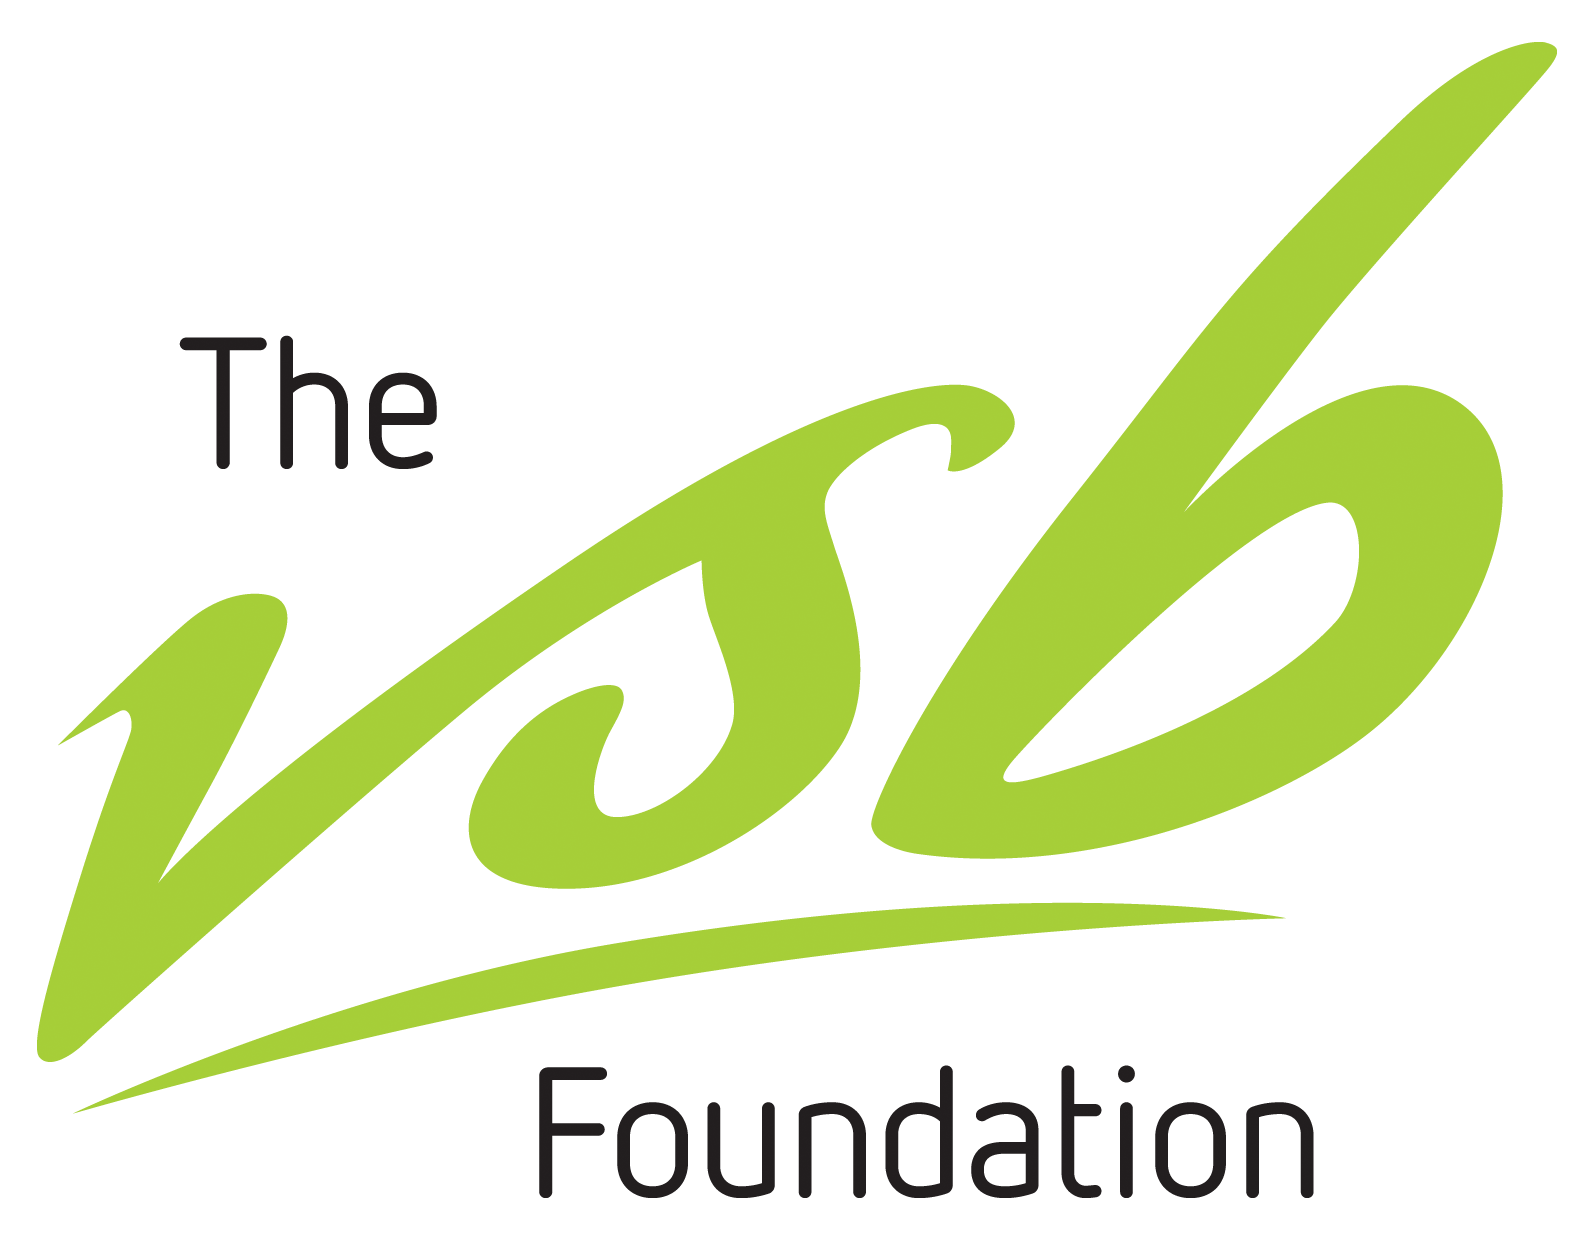 VSB Foundation